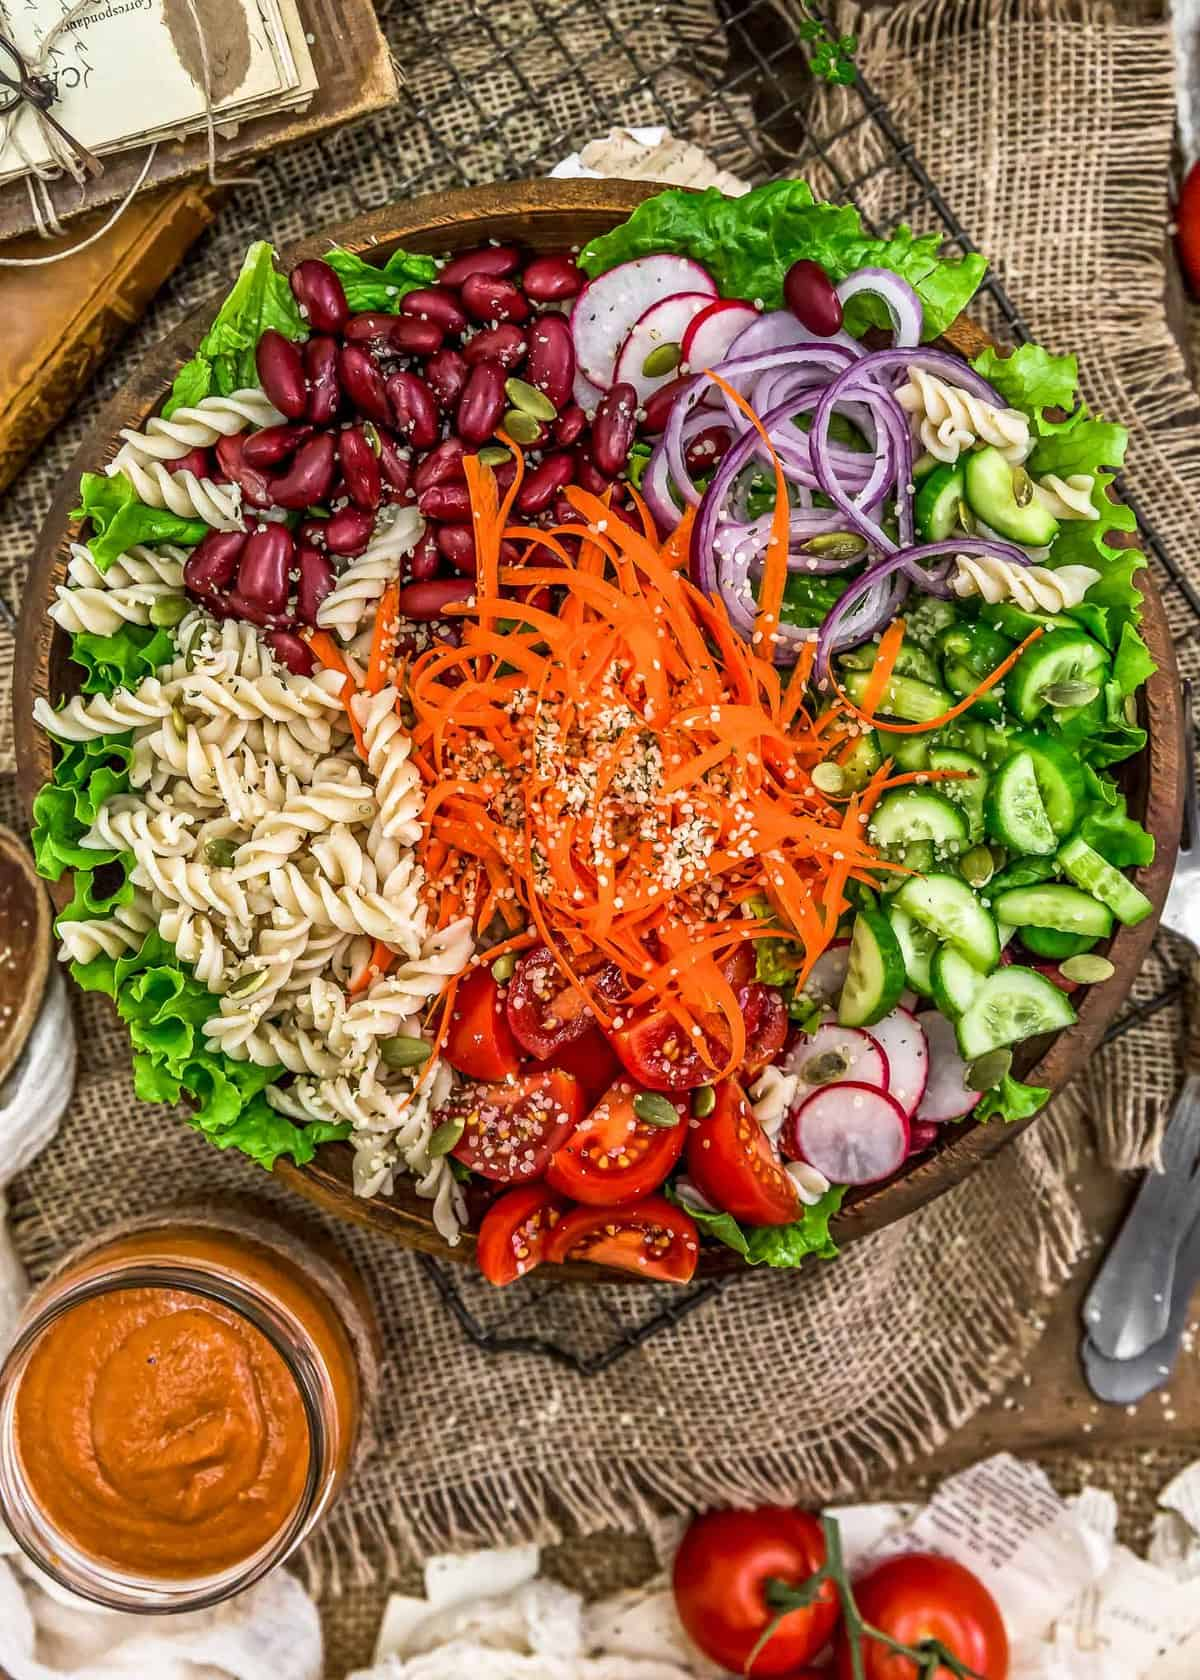 Oil Free French Dressing with salad